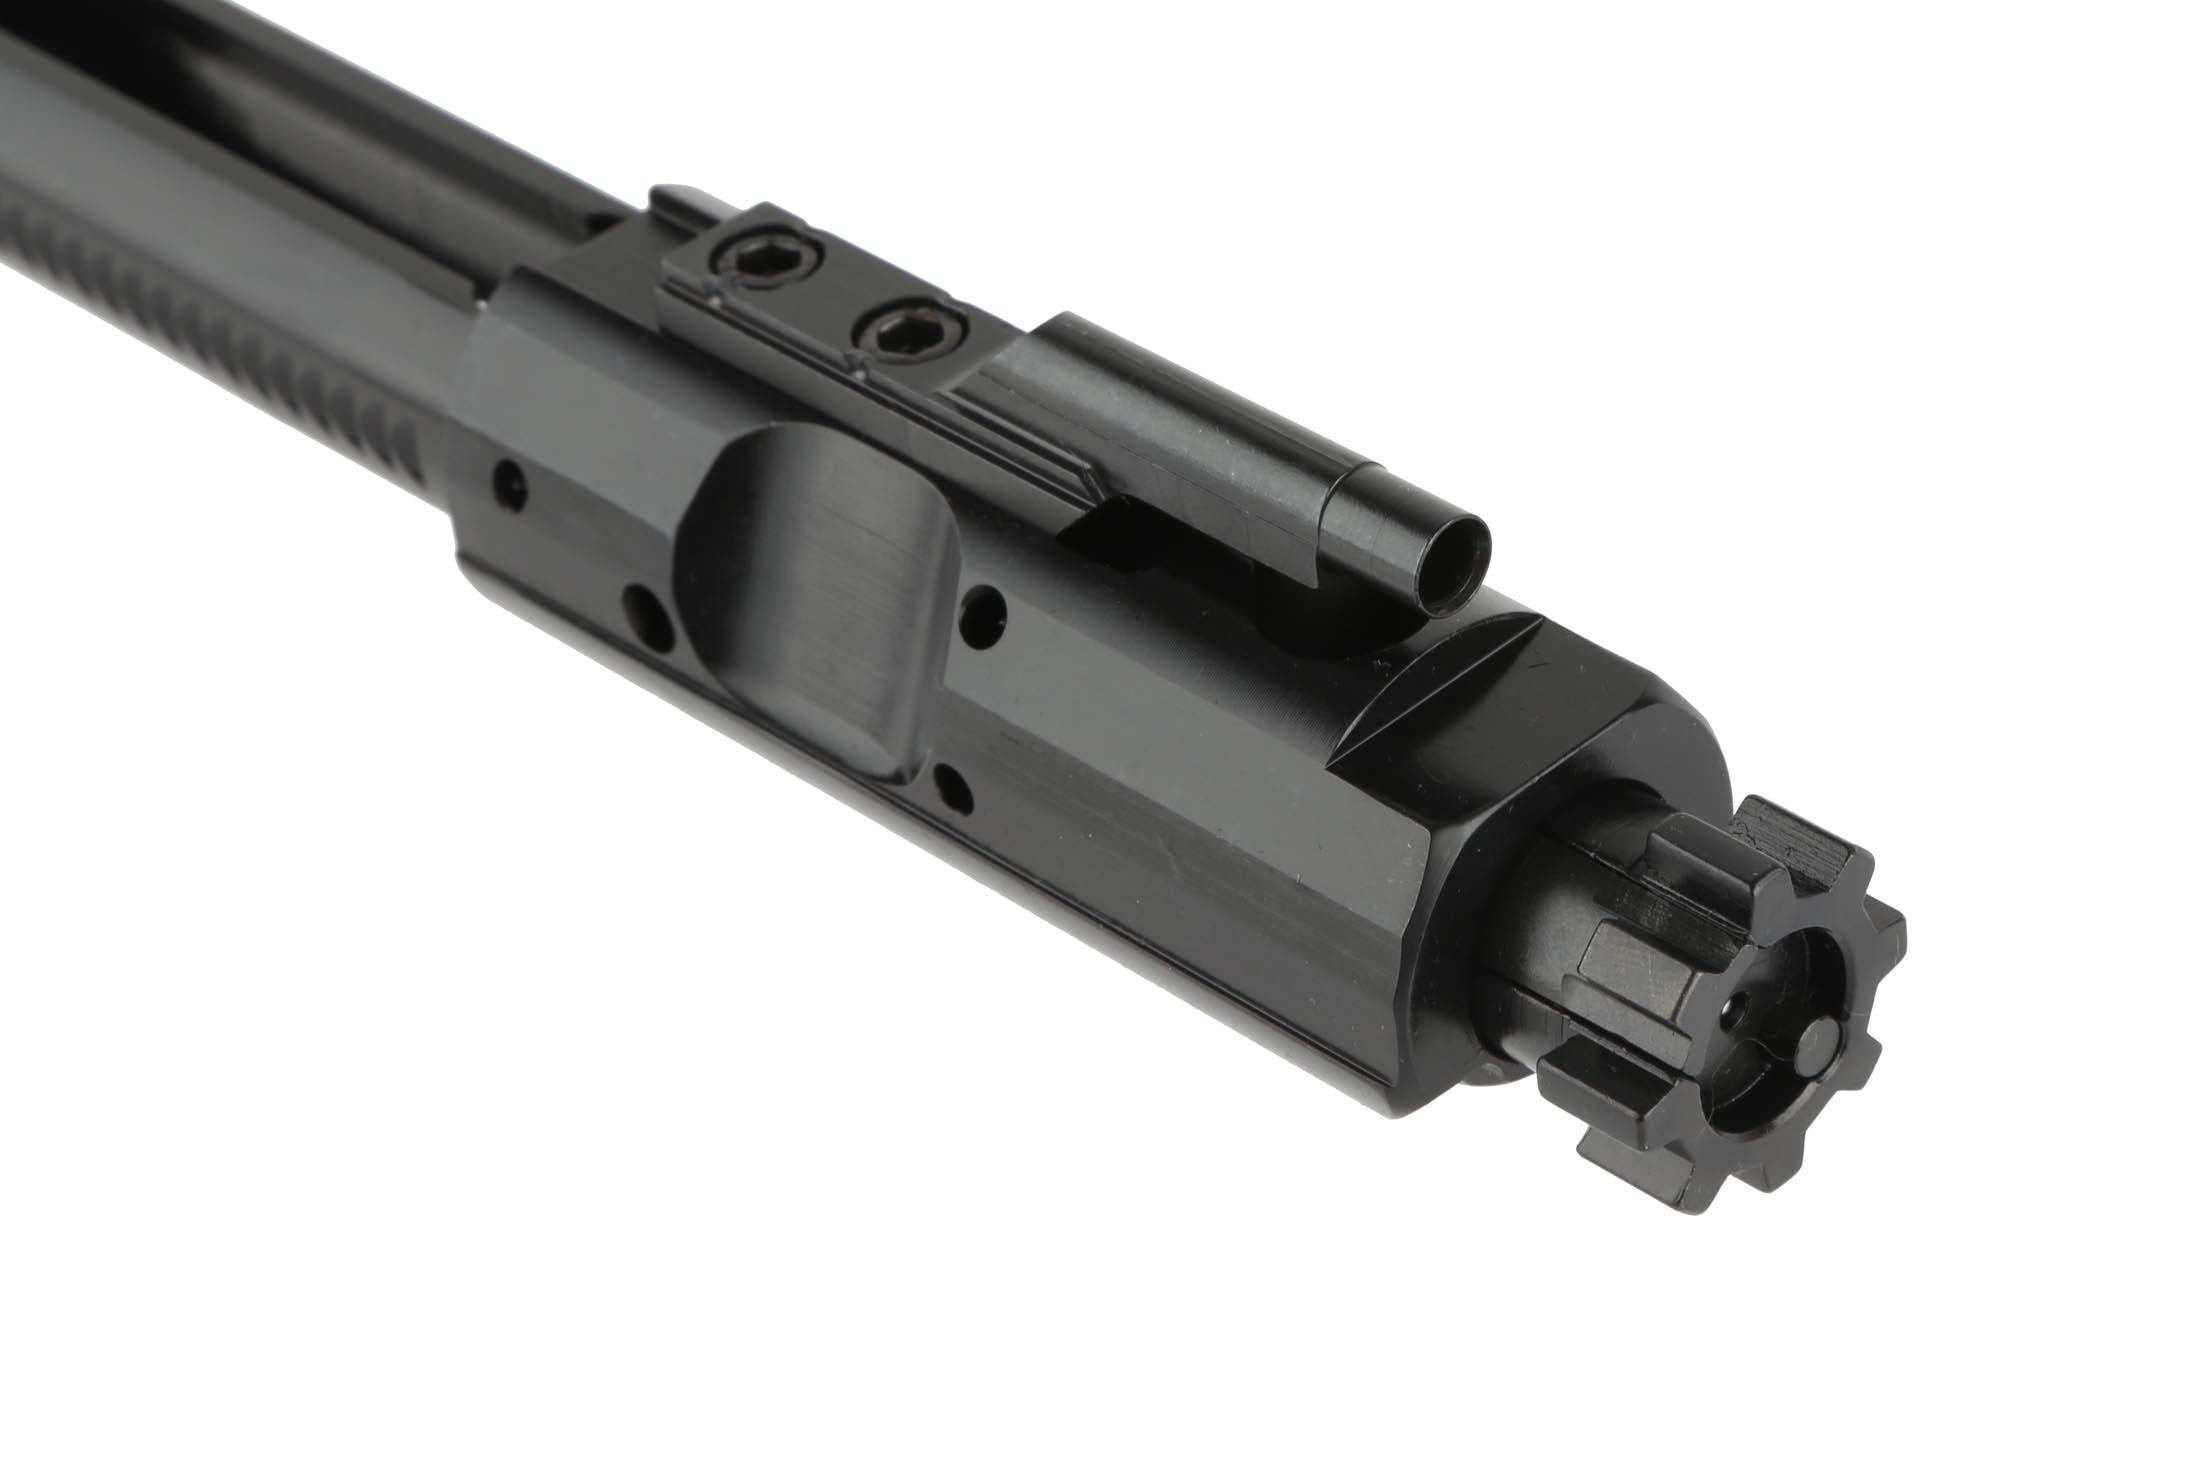 The Guntec AR-308 bolt carrier group has a properly staked gas key